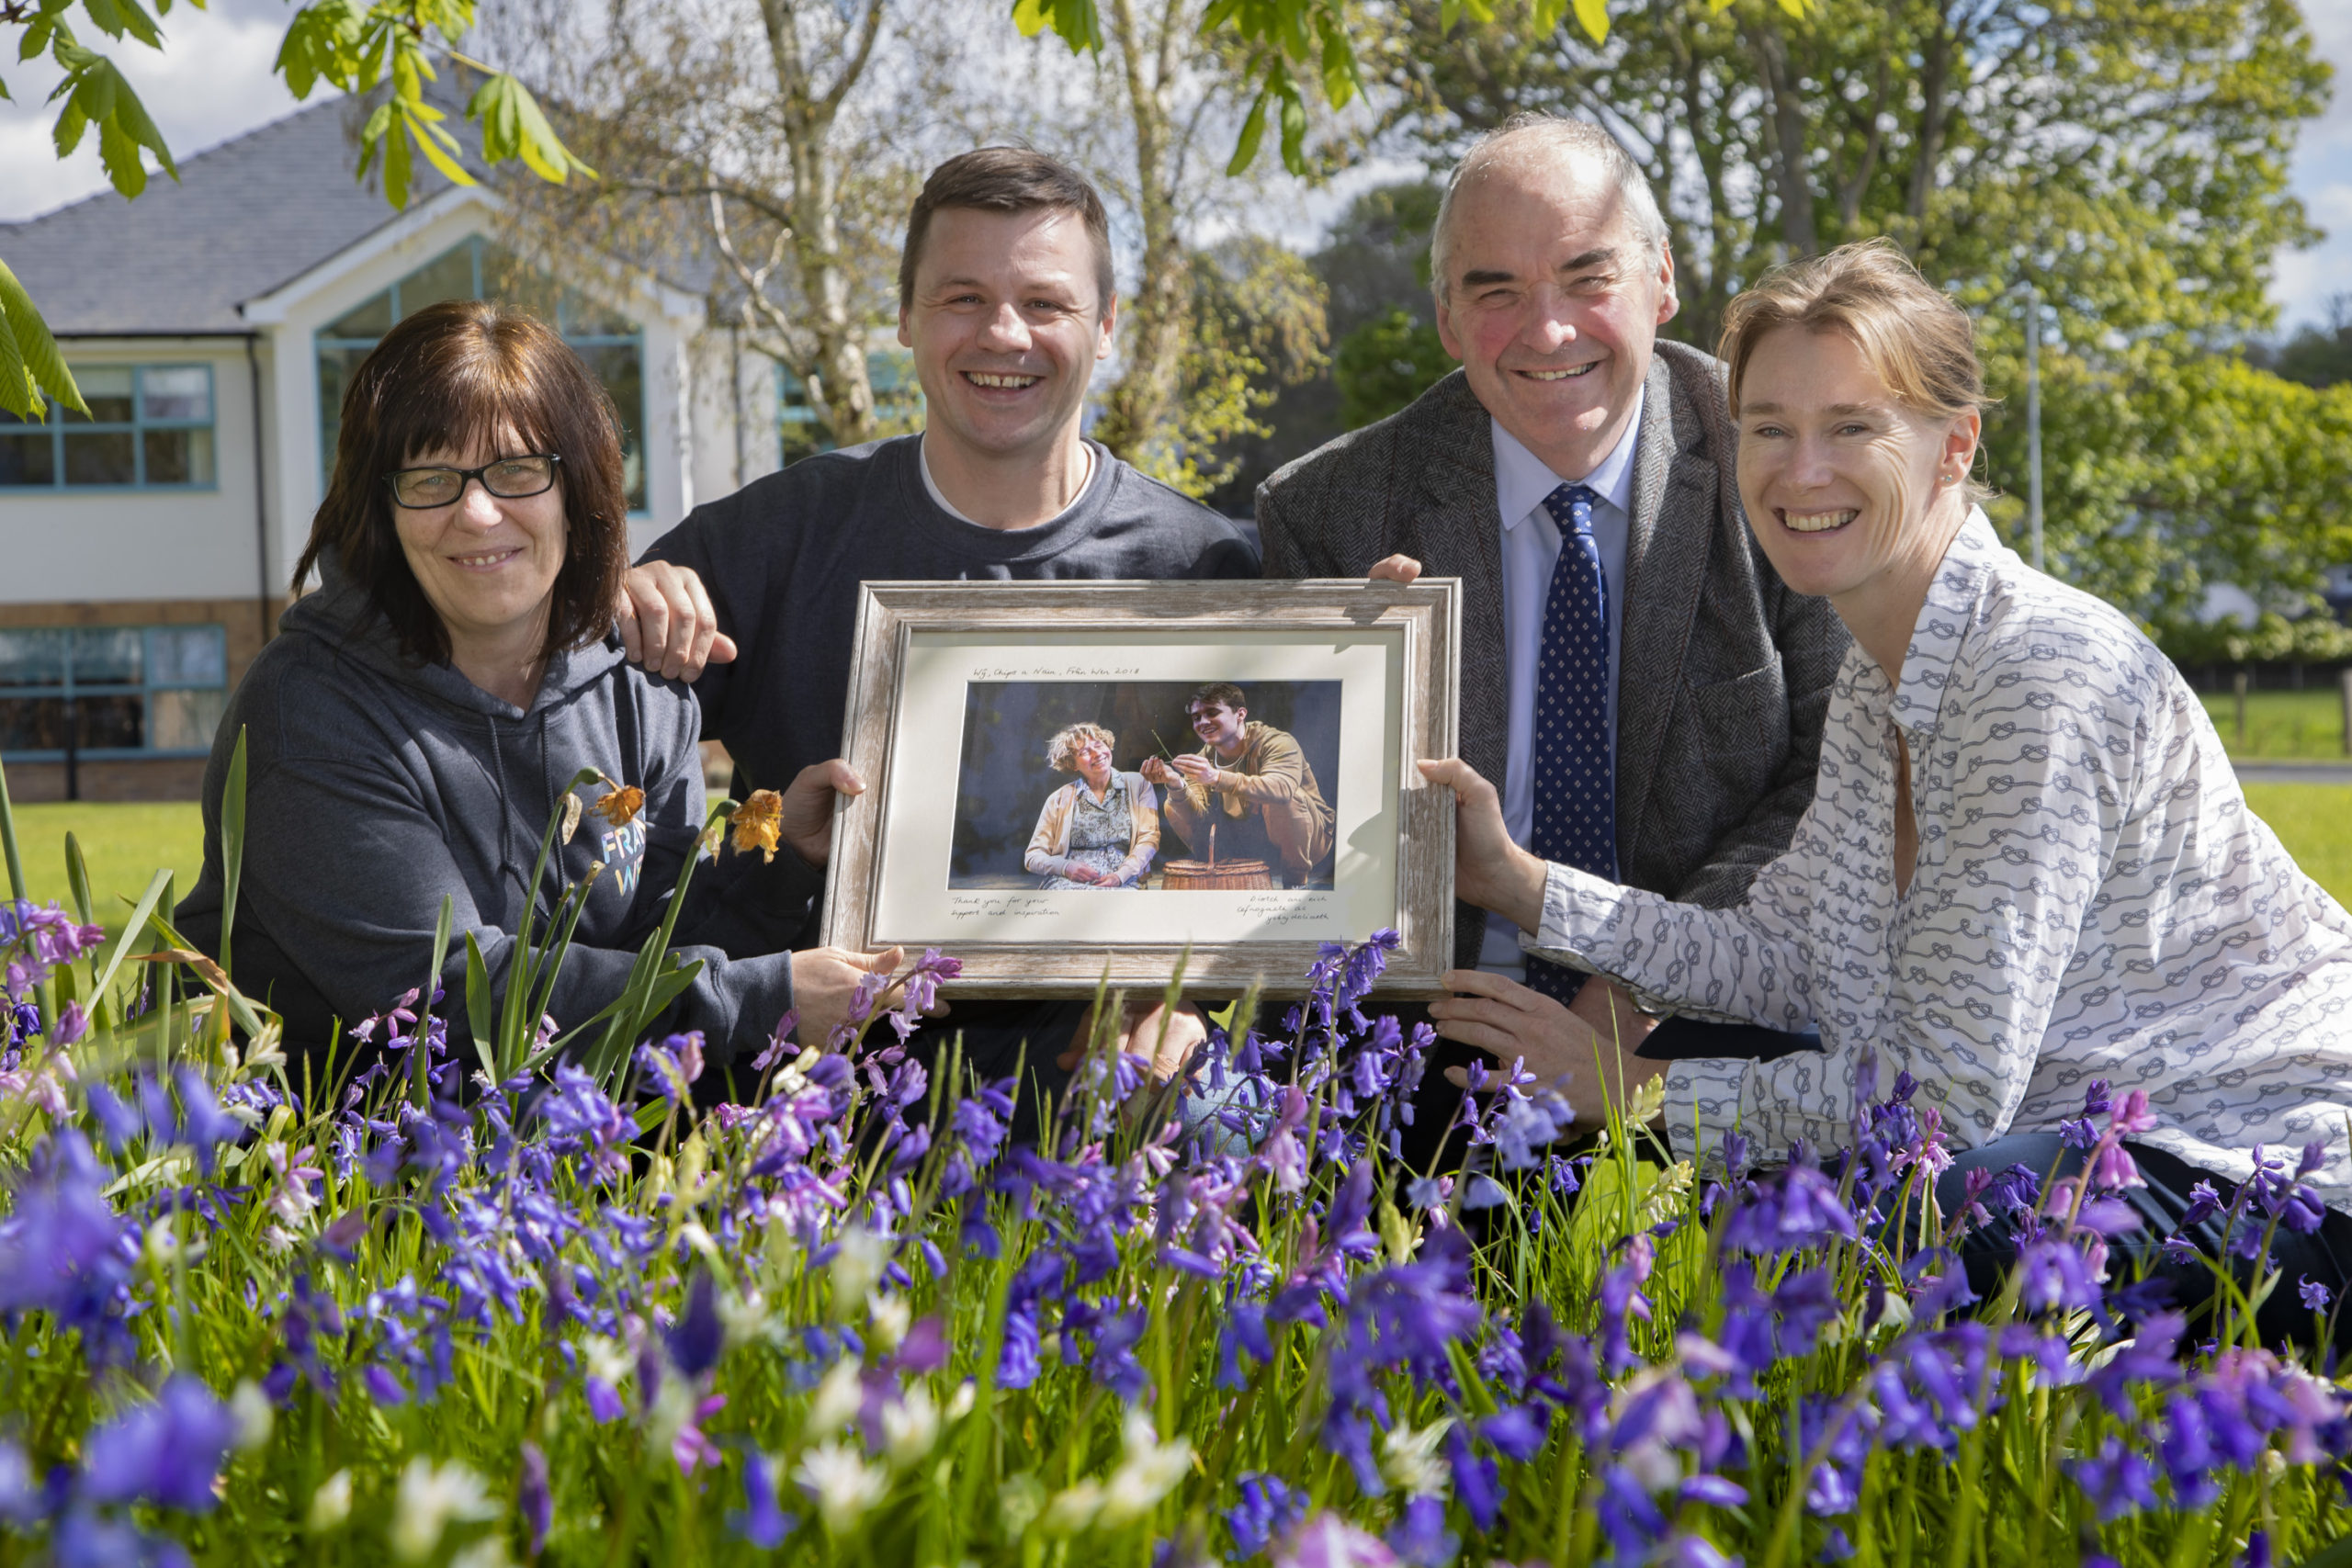 Theatre company thank care home residents for inspiring record-breaking success of moving play about dementia